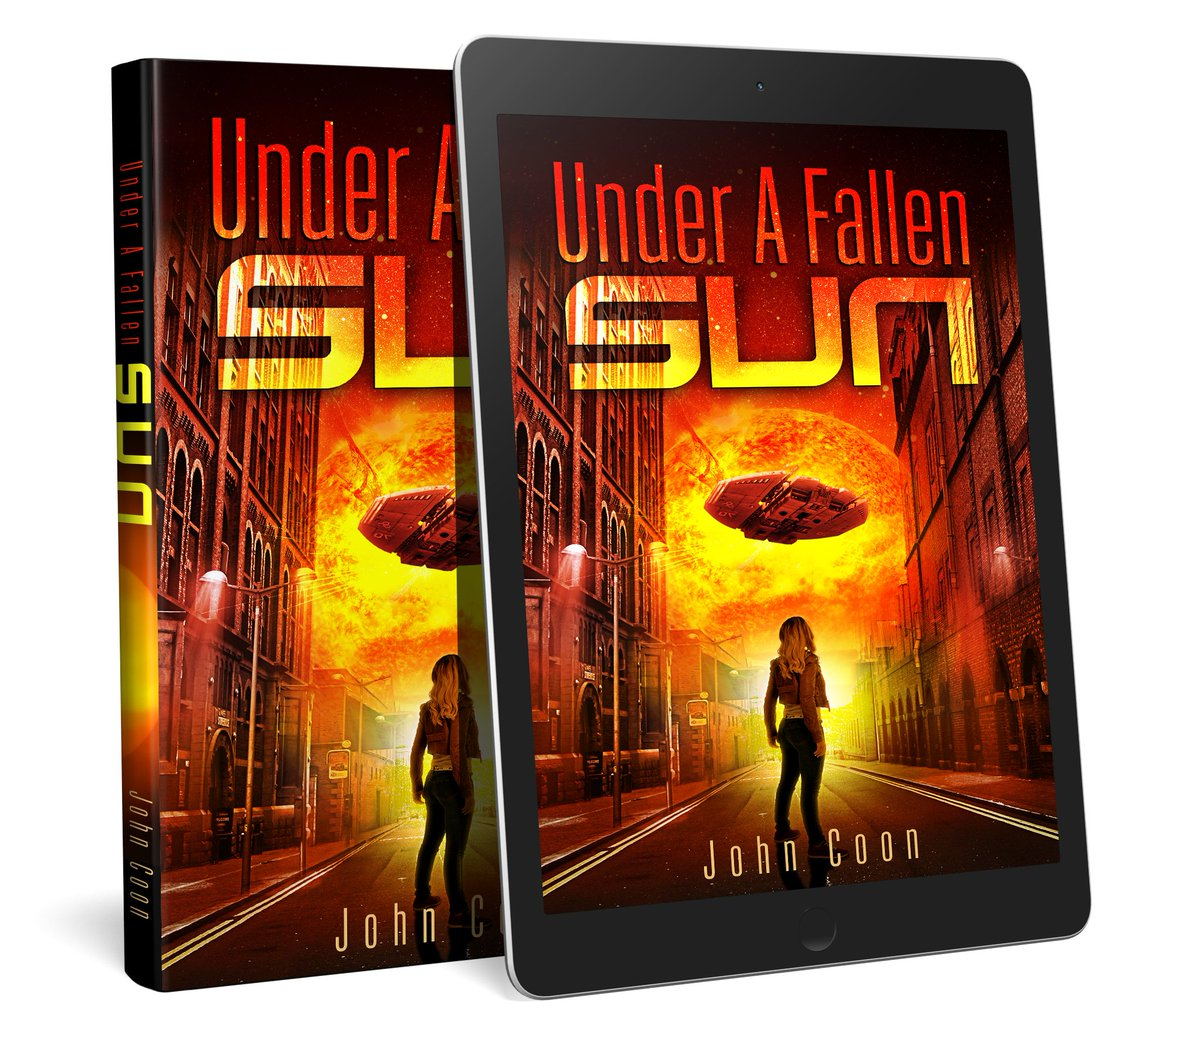 Travis harbors frightening secrets and is under siege from an alien menace. Can Paige and her friends survive and find a way to thwart their plans?  Get your copy now: https://www.amazon.com/dp/B07TRNYGST  By @johncoonsports #FallenSun #ScienceFiction #SciFi #RRBC #MustReadpic.twitter.com/o5J8KVKH3k